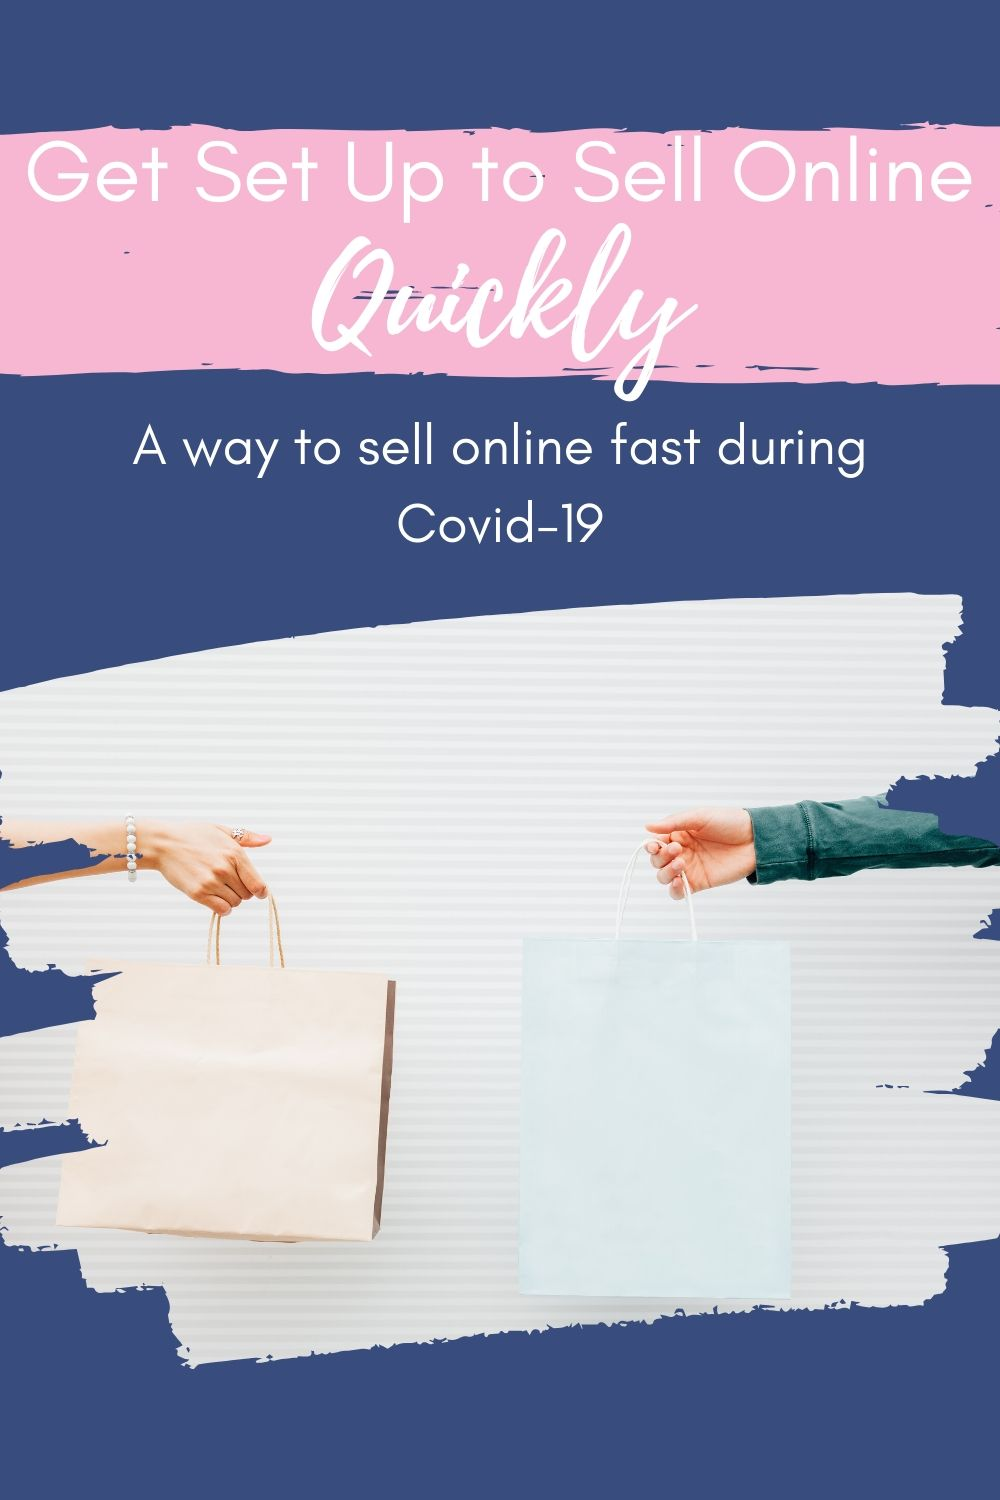 sell online quickly during covid-19